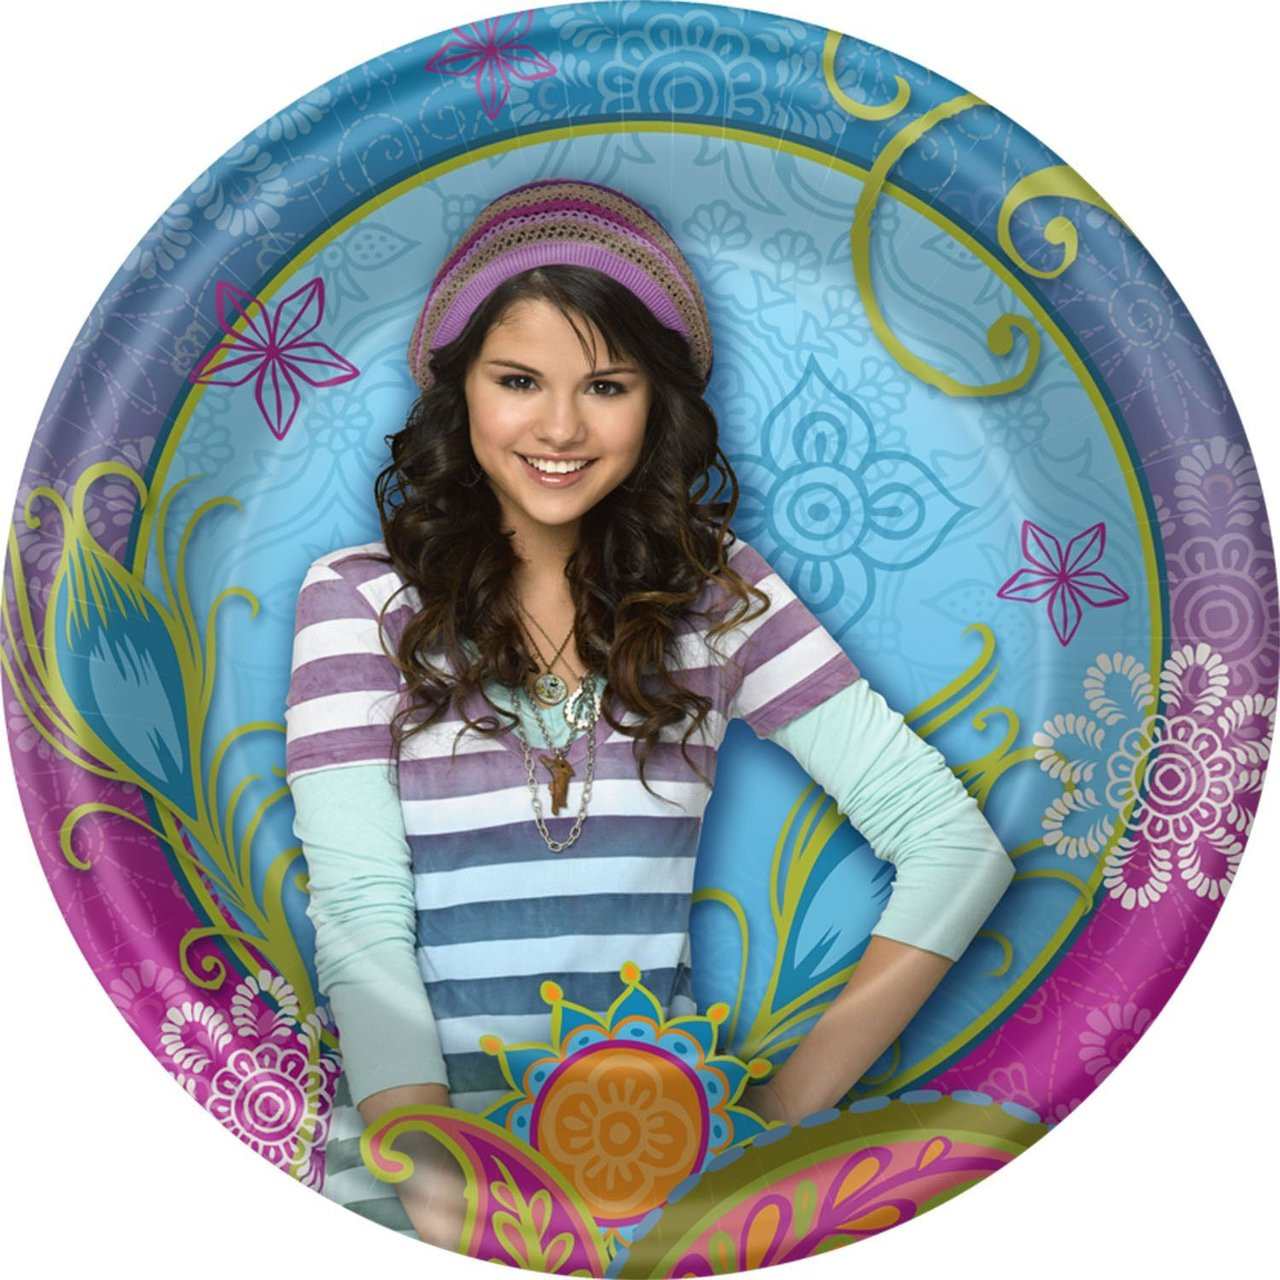 Wizards of Waverly Place Small 7 Inch Round Party Cake Dessert Plates